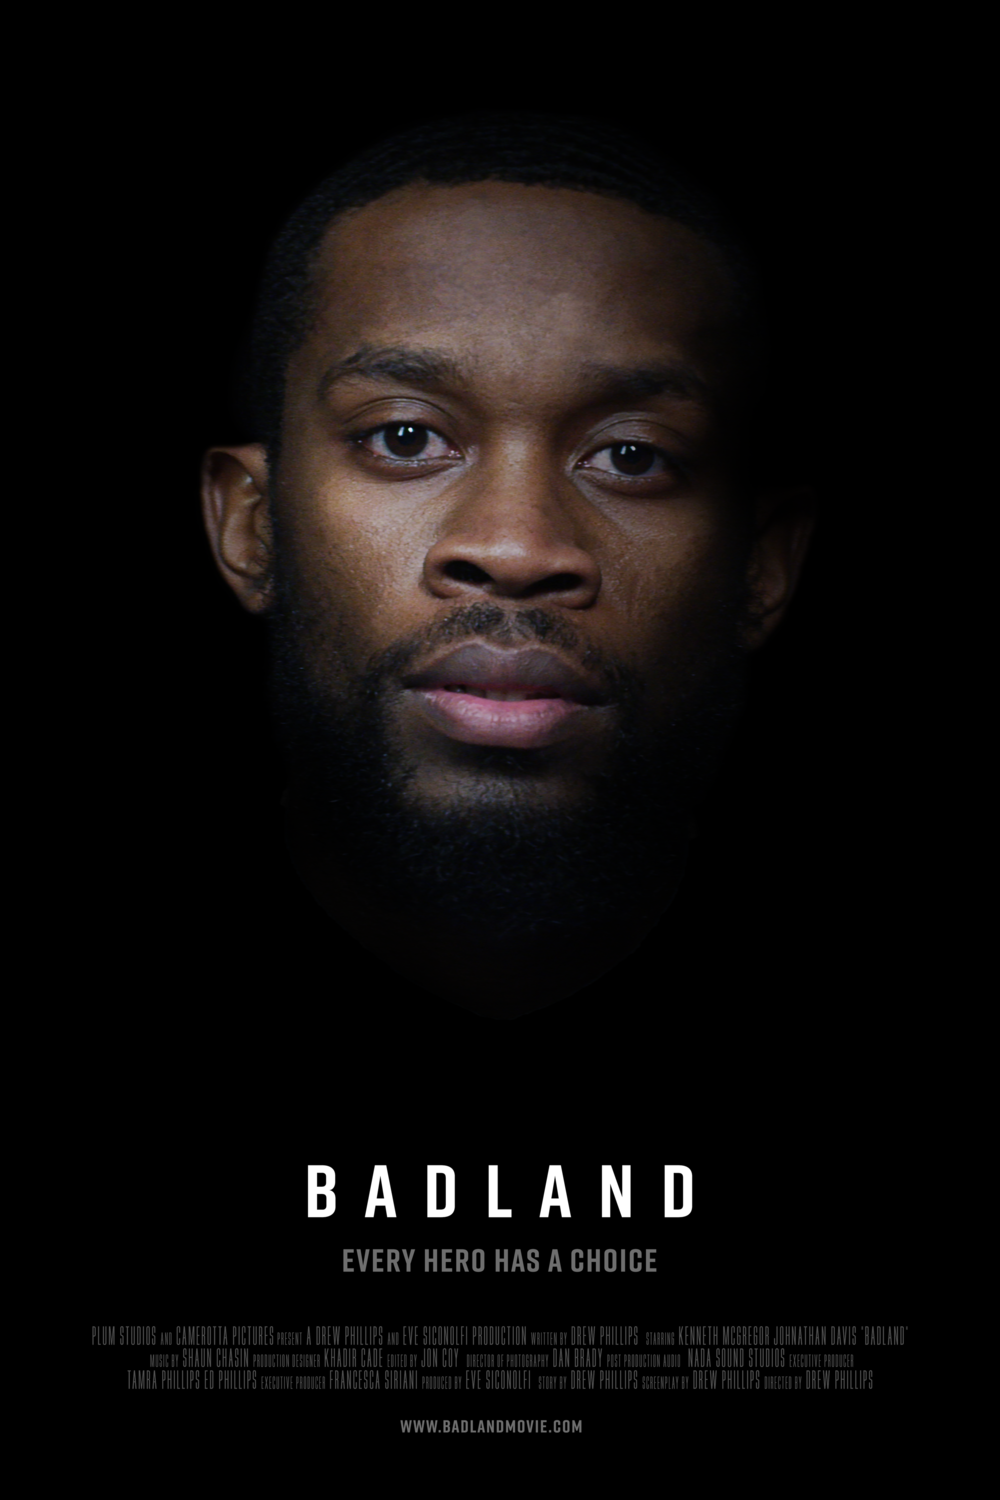 Badland Theatrical_1_LowRes.png